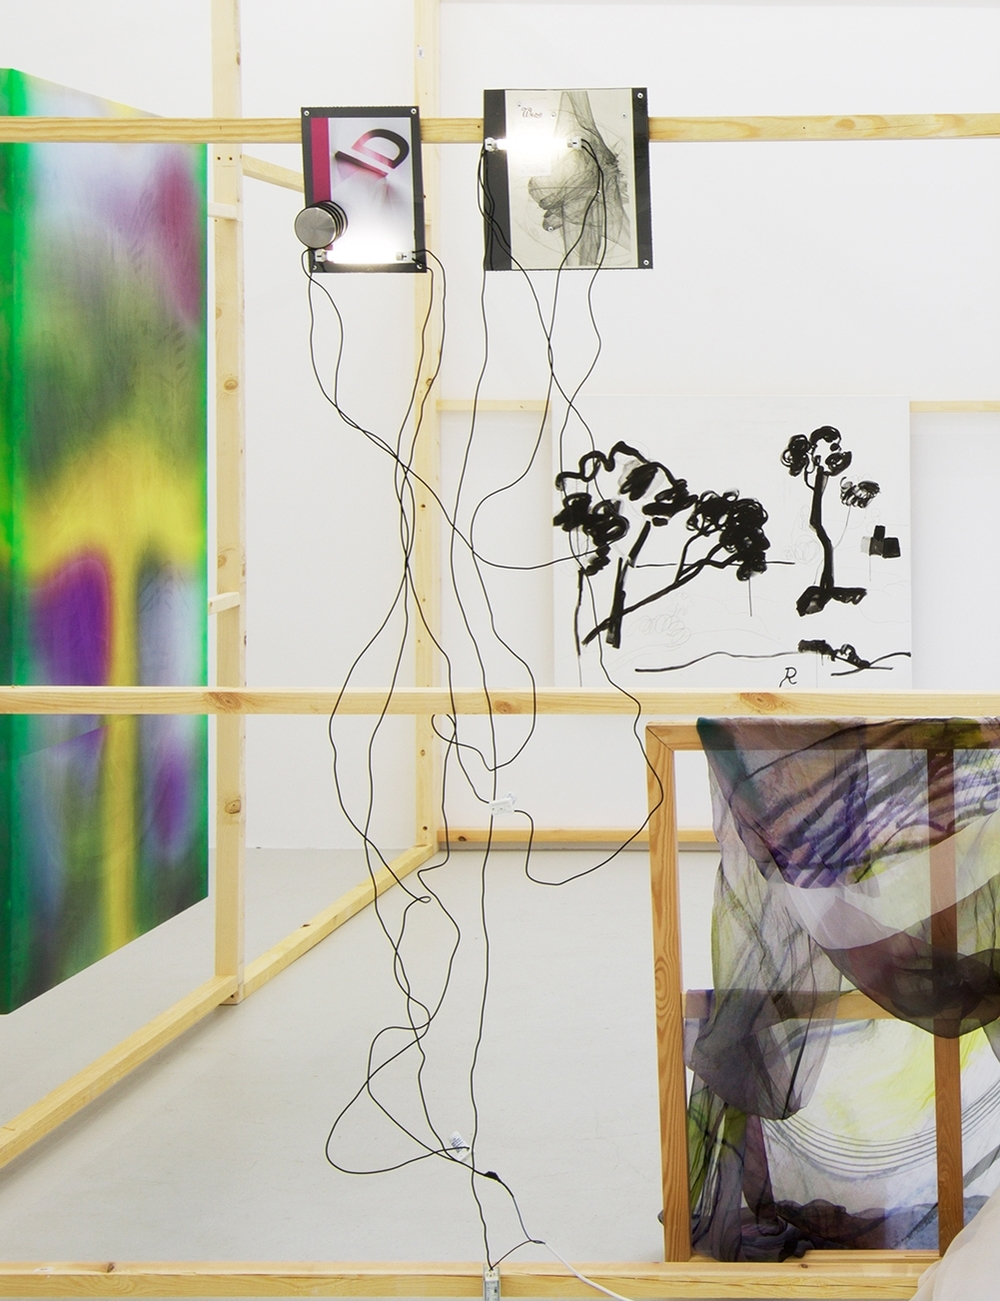 Installation view, Windoes, The Composing Rooms